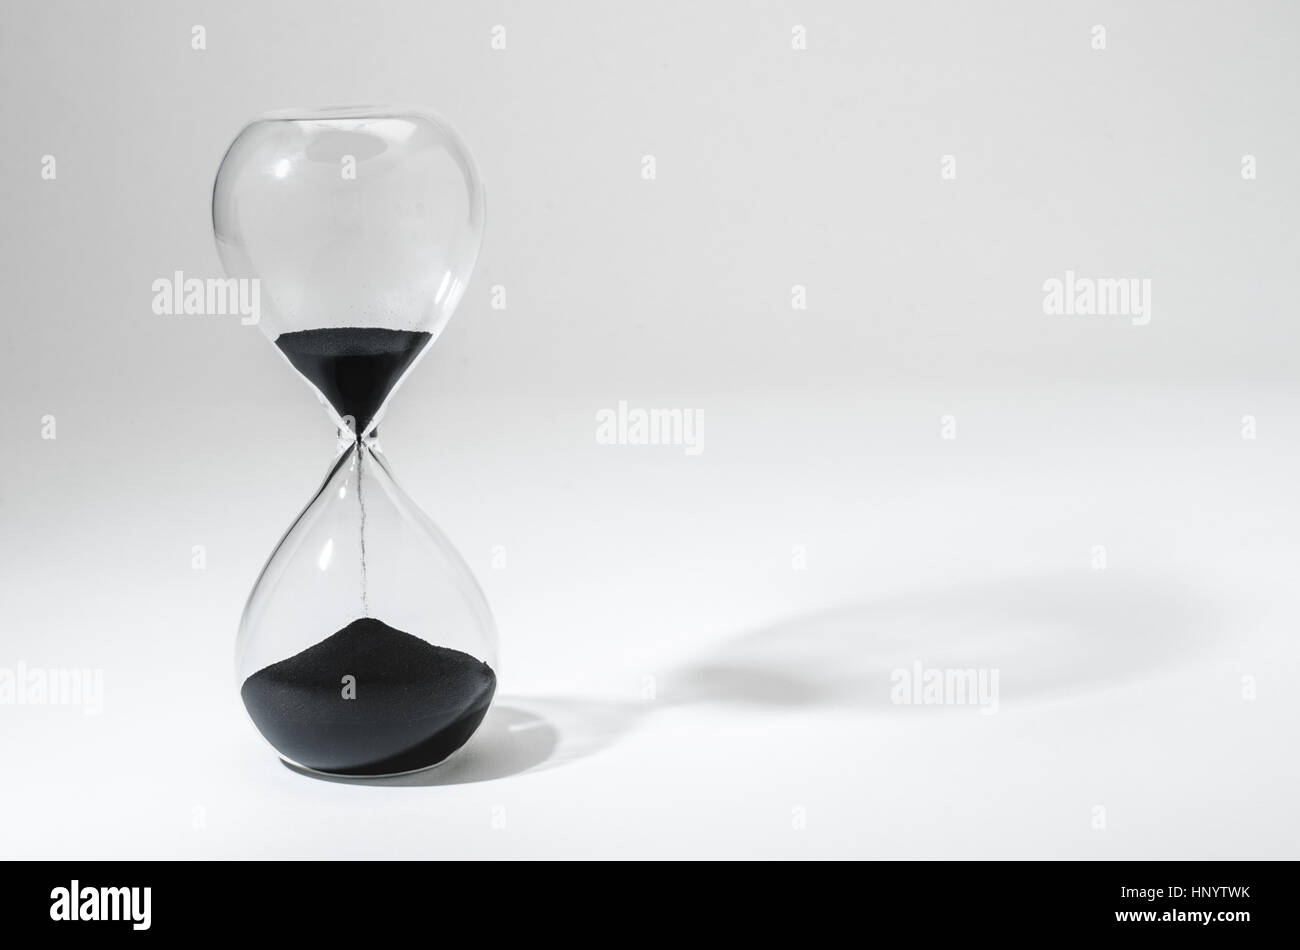 Hourglass With Time Running Out - Stock Image